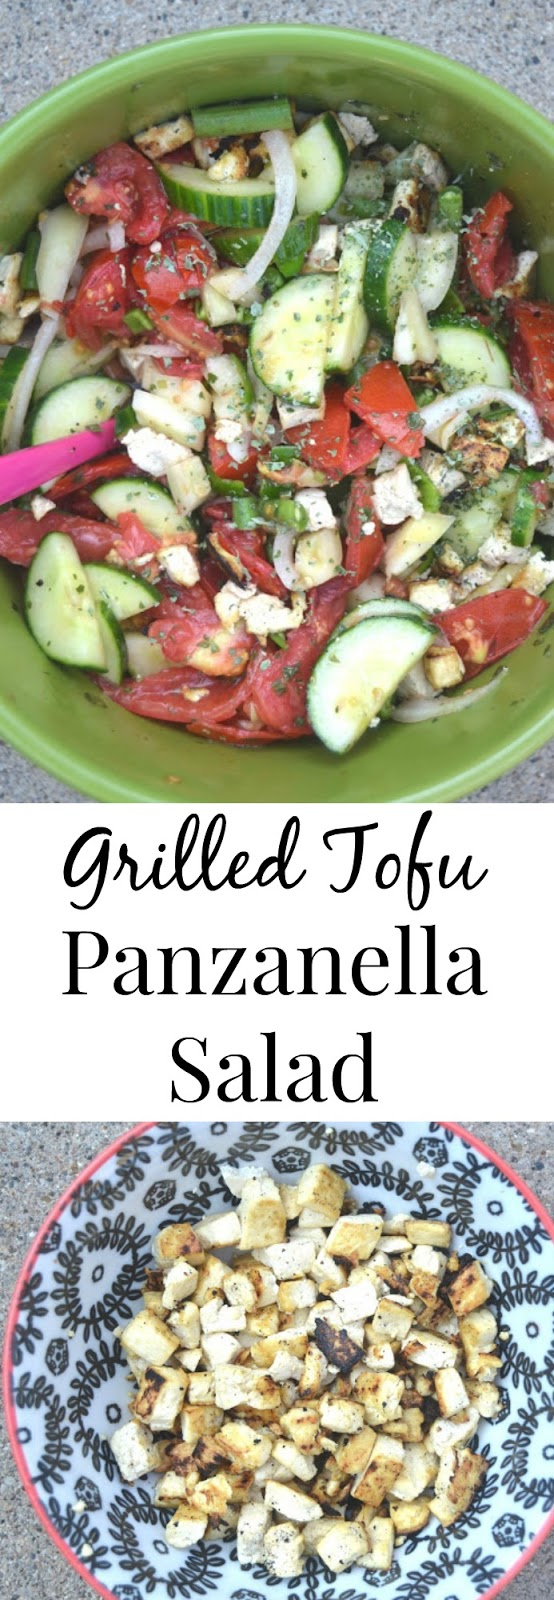 This grilled tofu panzanella salad makes the perfect healthy and fresh dish! Loaded with grilled tofu, tomatoes, cucumbers and more! www.nutritionistreviews.com